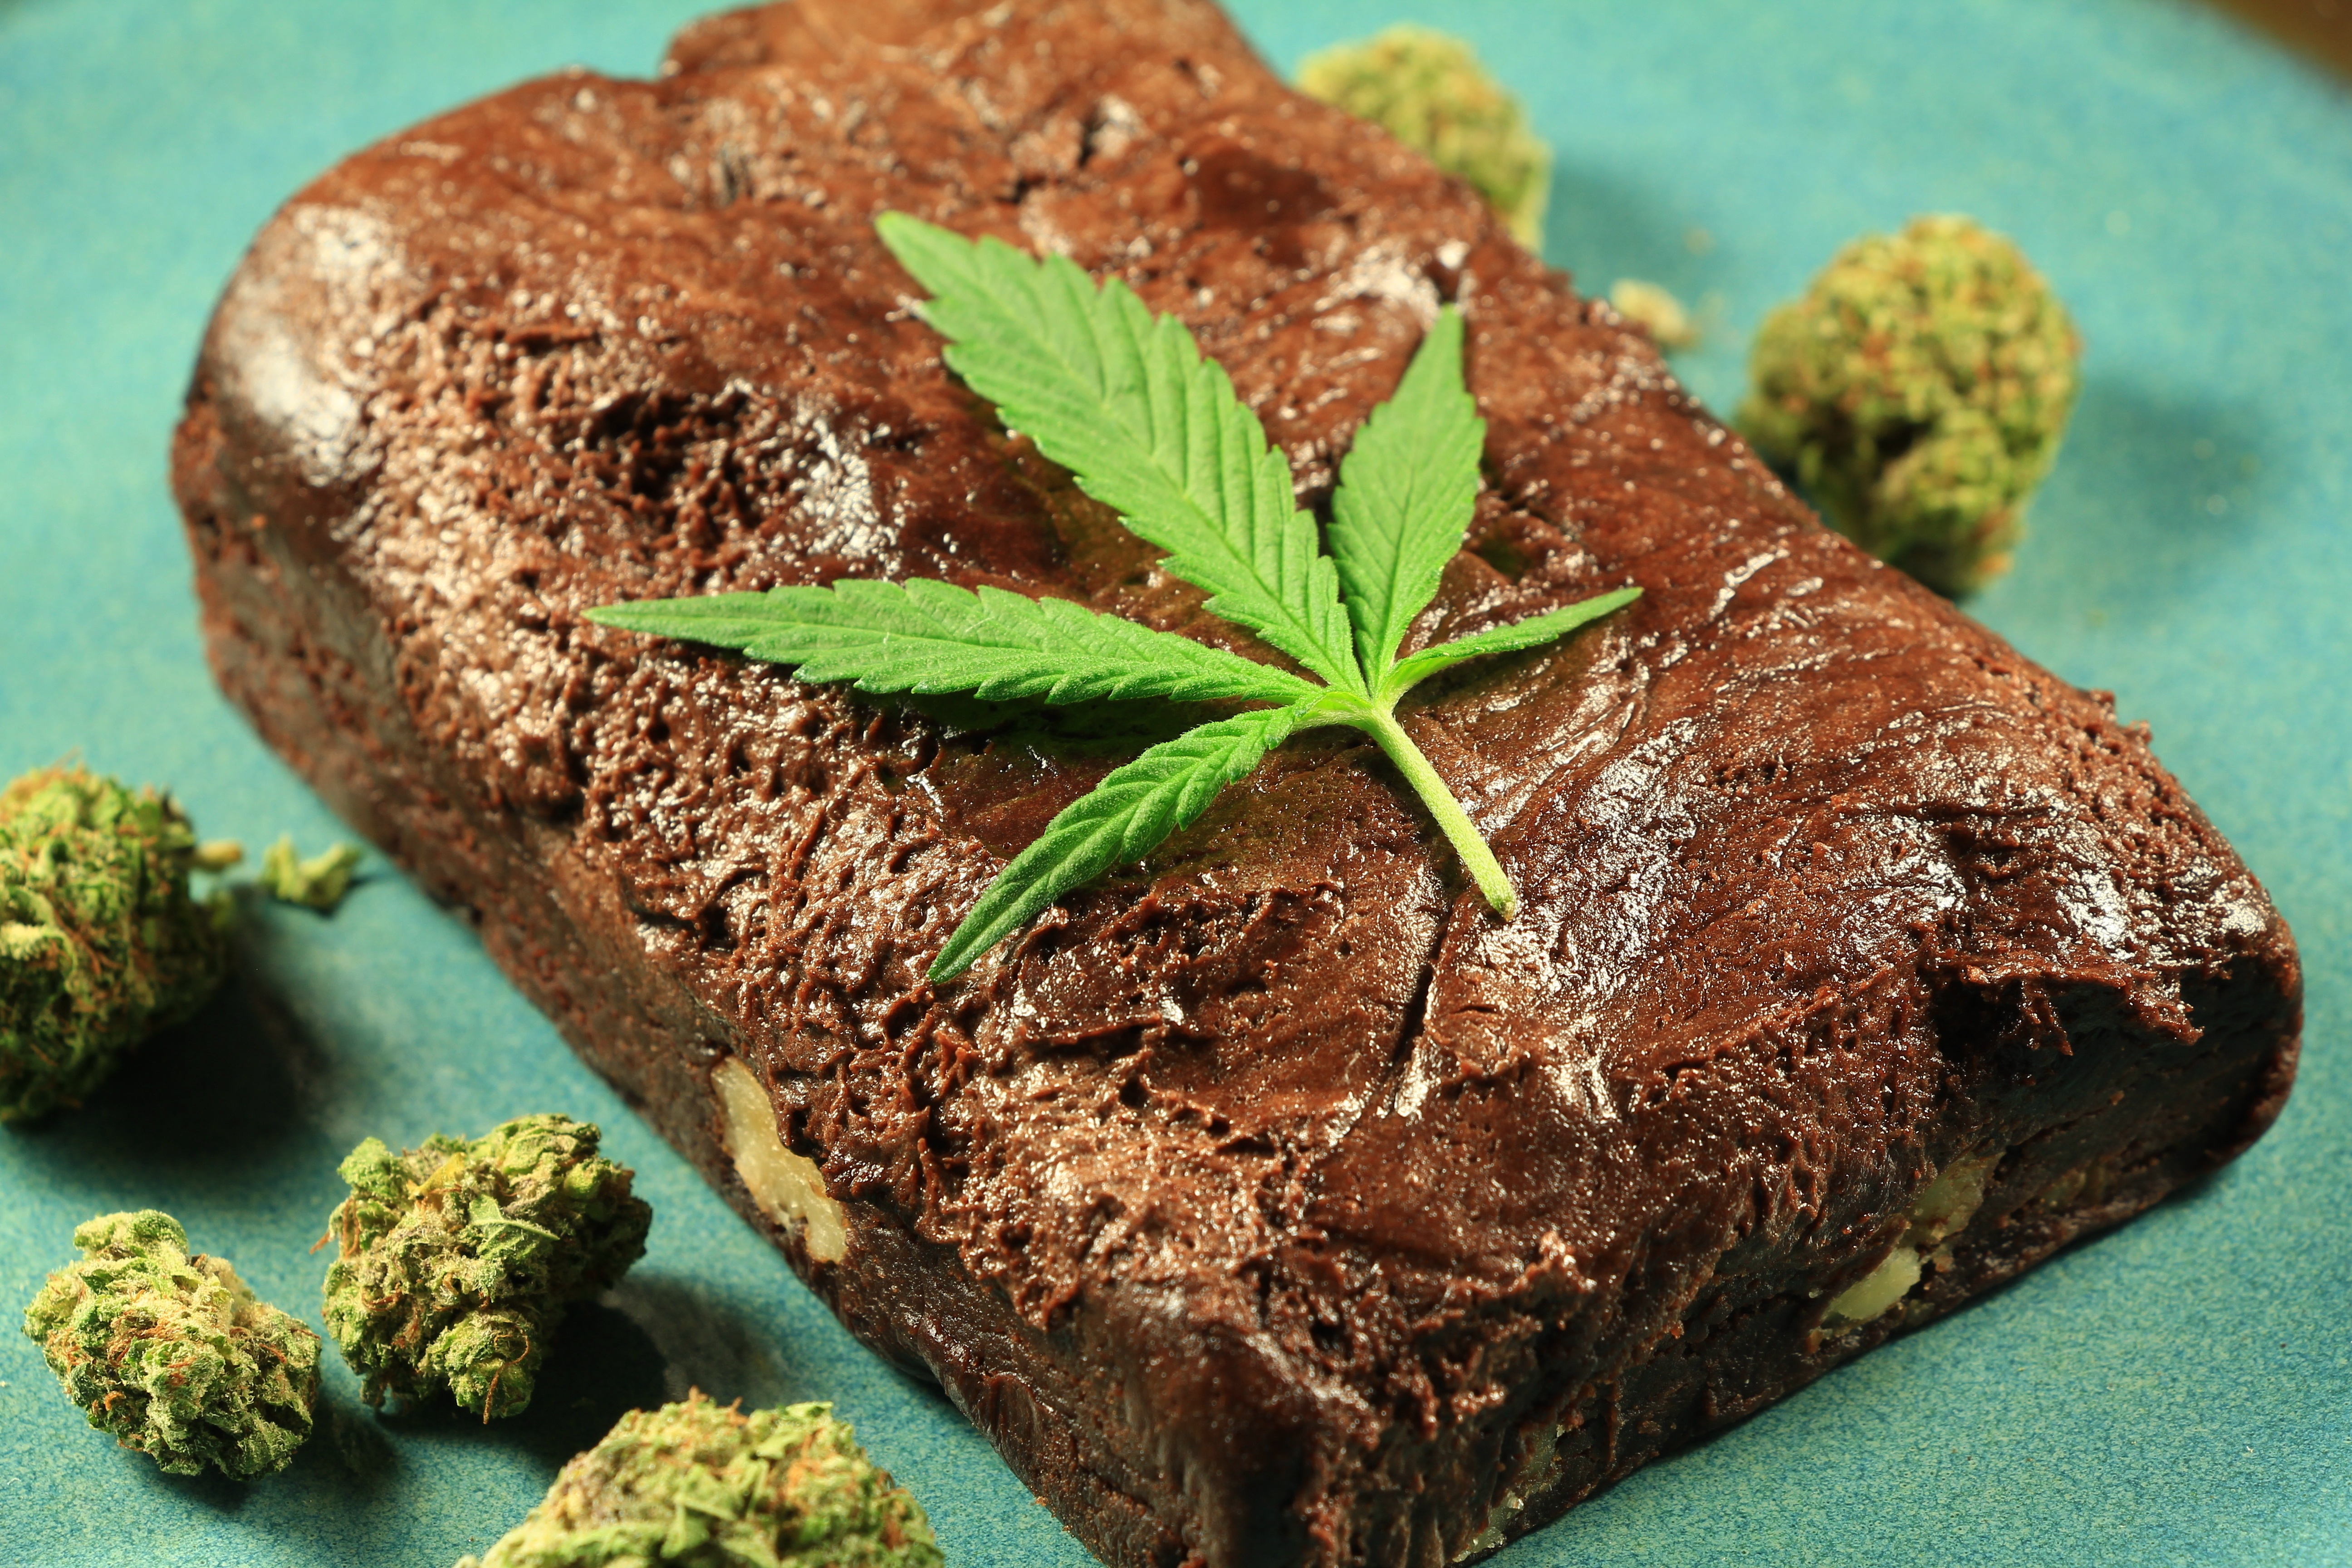 How To Make A Space Cake With Weed